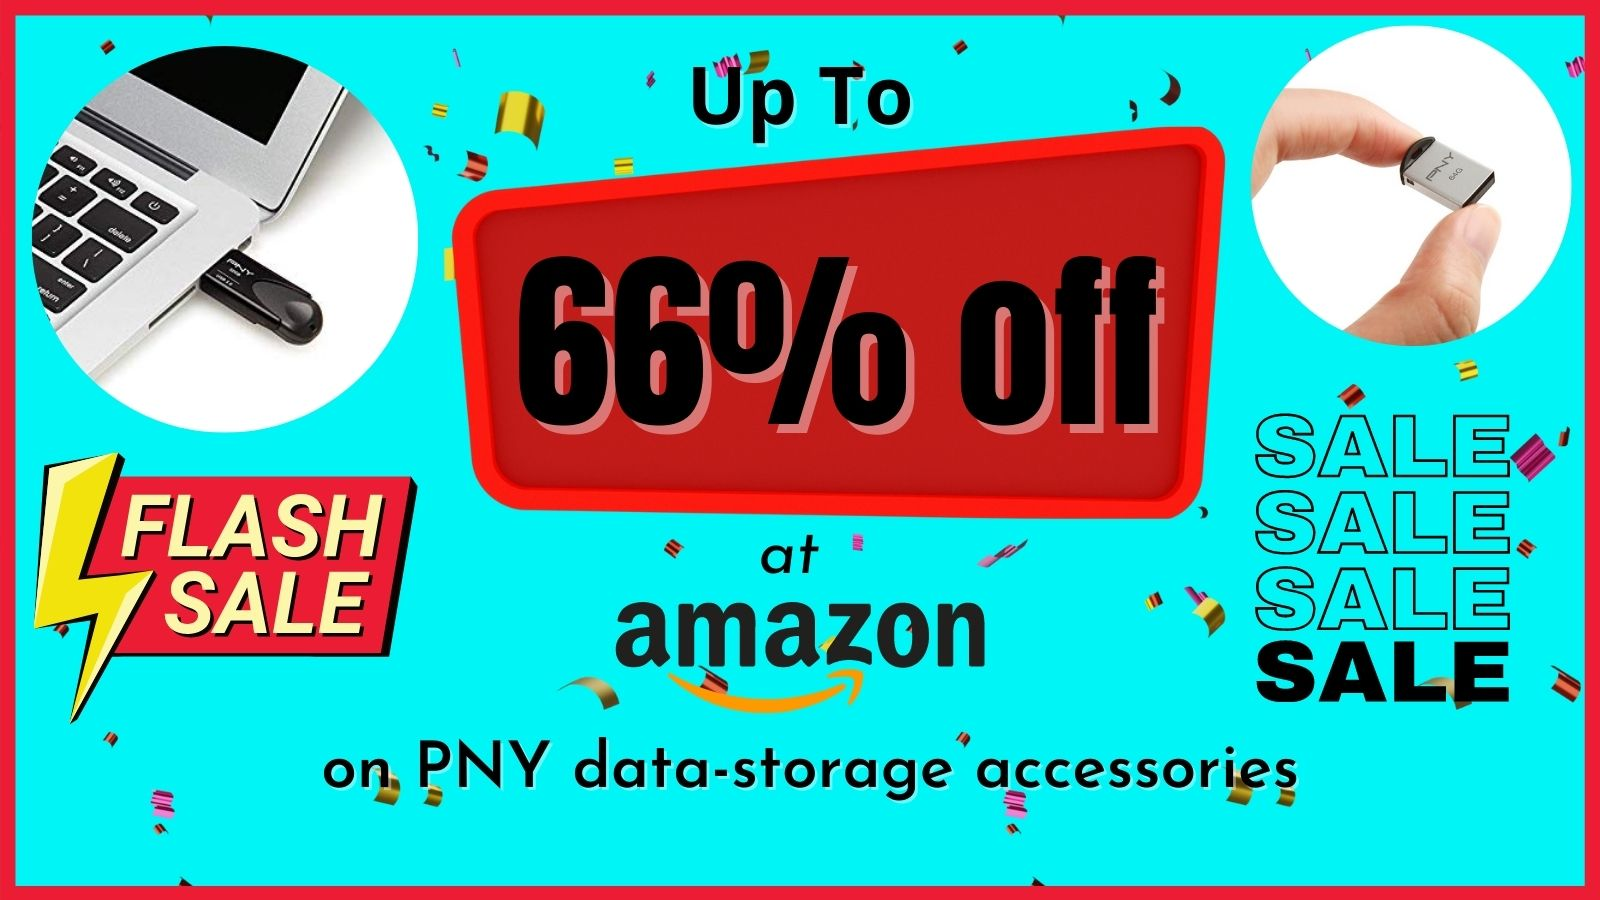 Up To 66% off at Amazon on PNY data-storage accessories